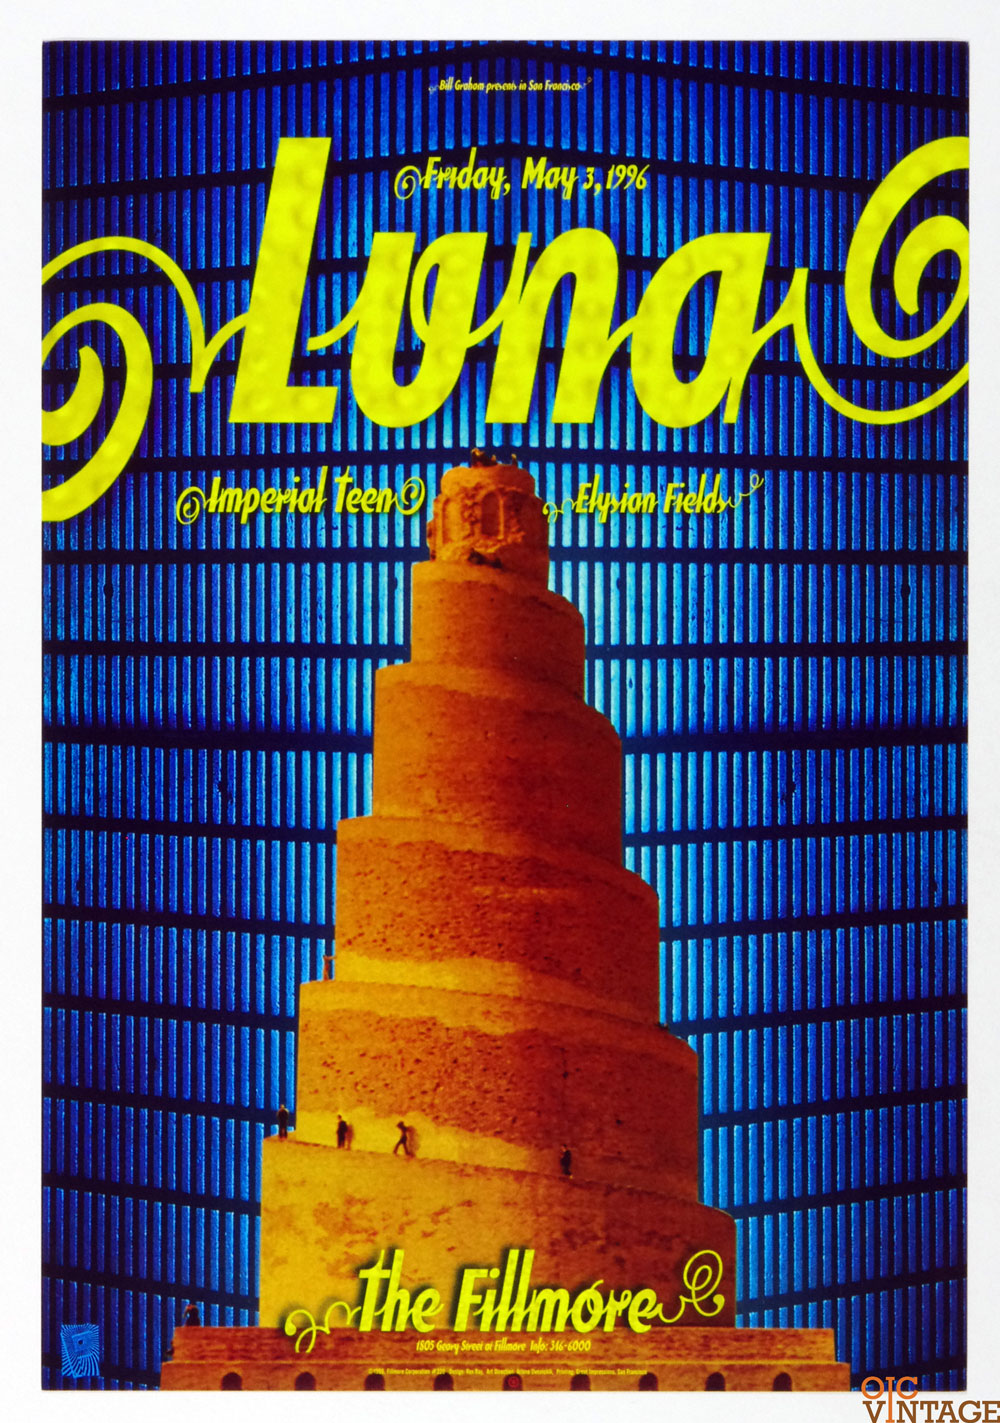 New Fillmore F220 Poster LUNA Imperial Teen Elysian Fields 1996 May 3